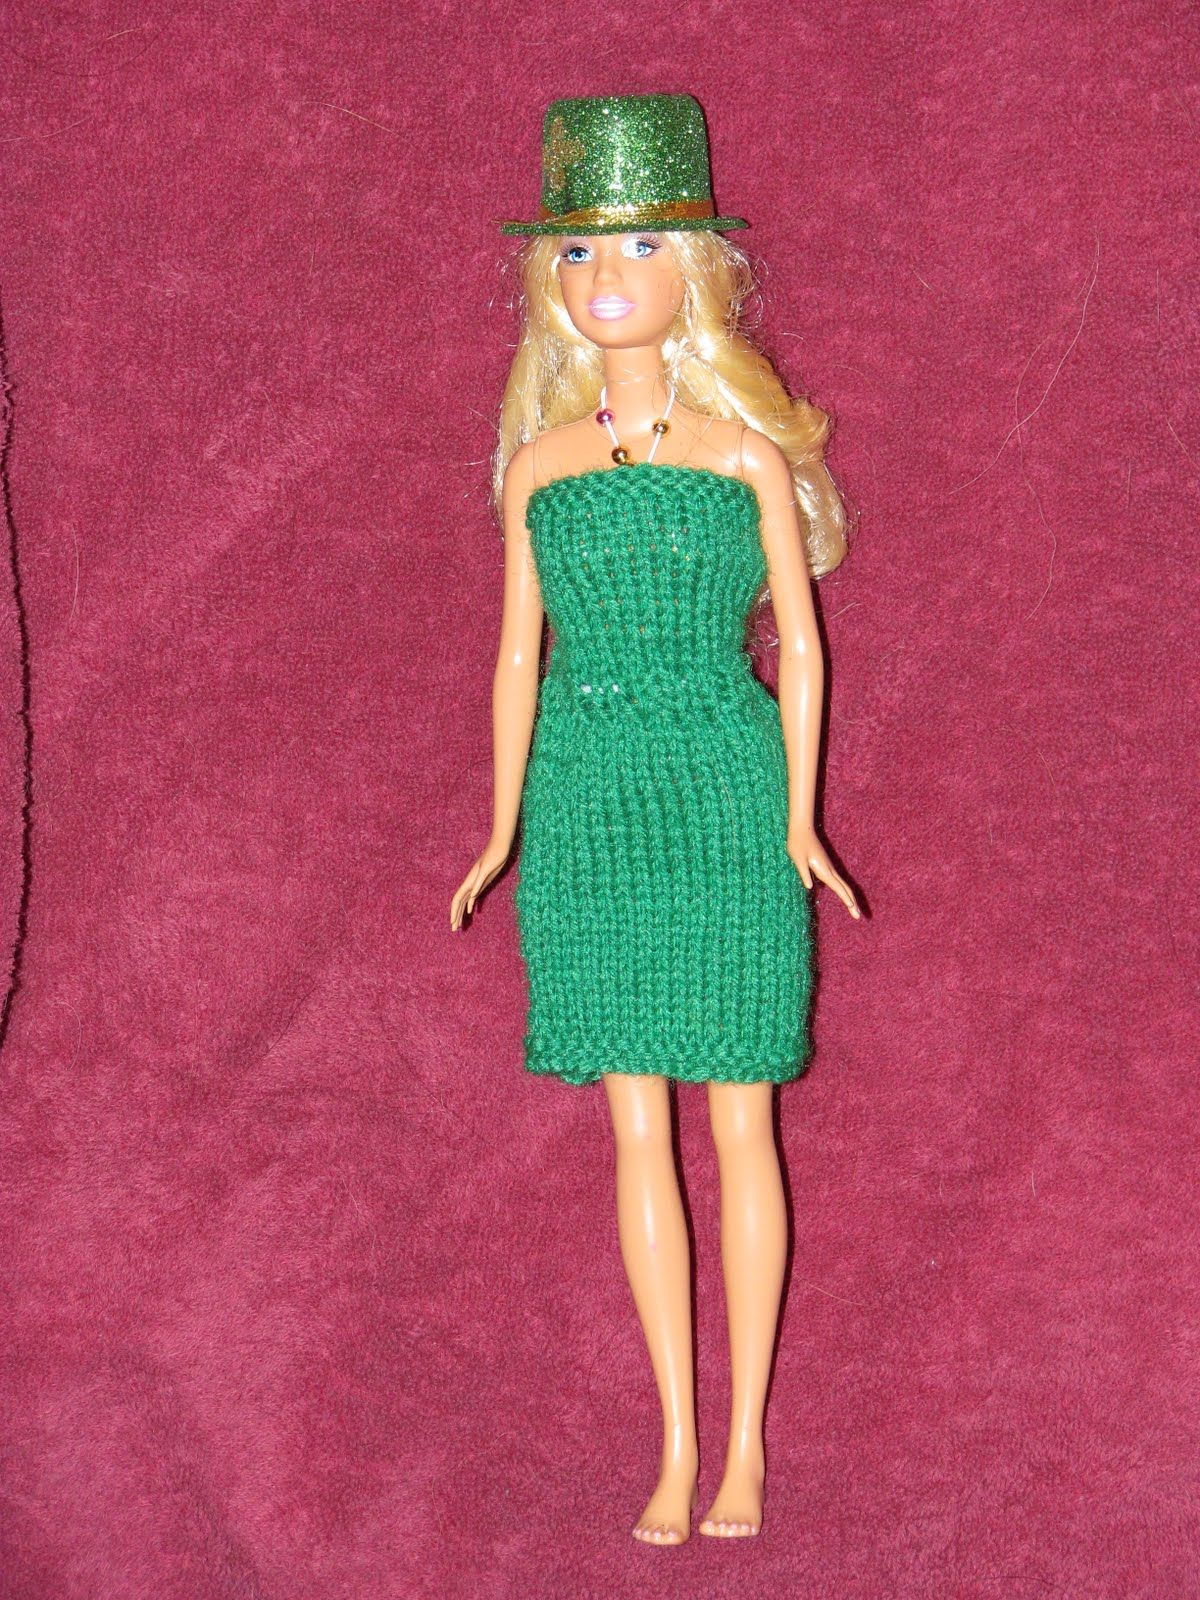 Crochet Barbie | Doll Clothing For Sale